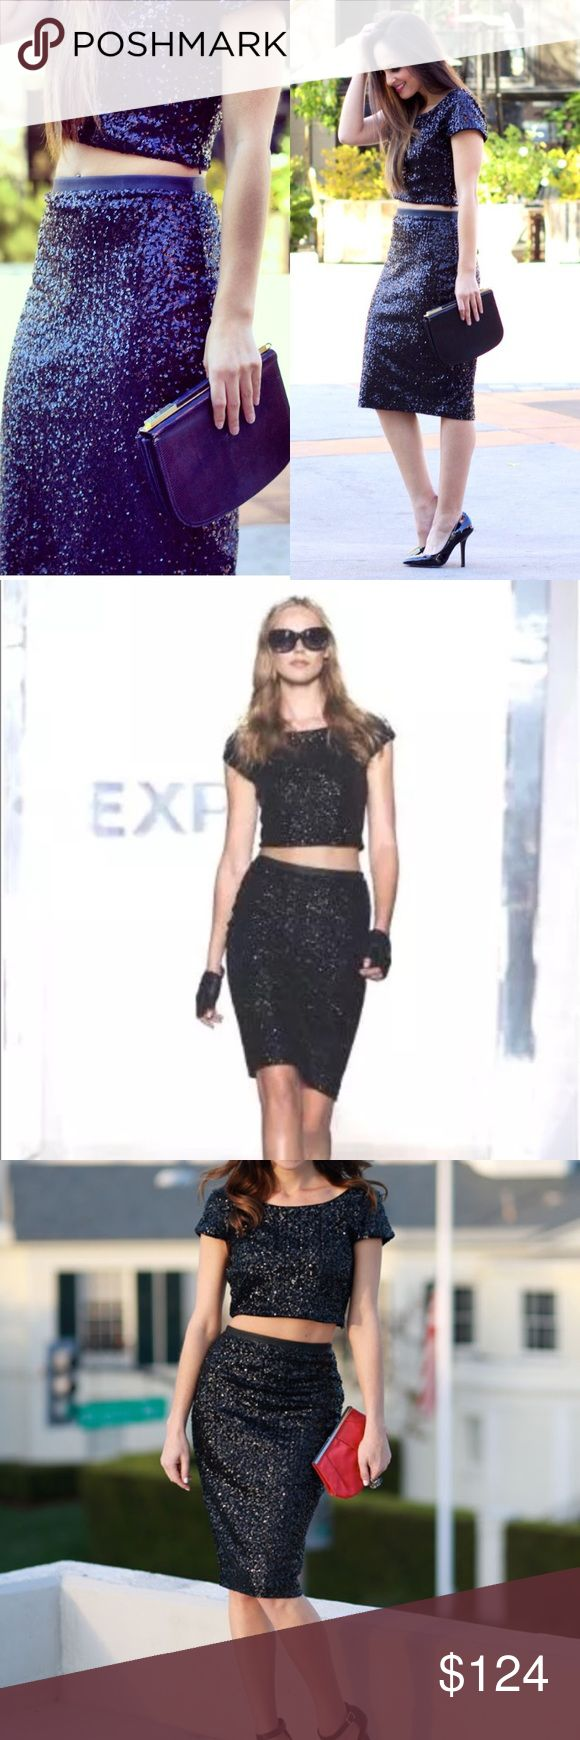 Sequin Crop Top & Pencil Skirt Worn once and dry cleaned! Outfit was almost $200 at Express & a blogger favorite! Skirt waistband has a faux leather trim for detail! Would look great with a bold lip or Statement shoe! Express Dresses Midi